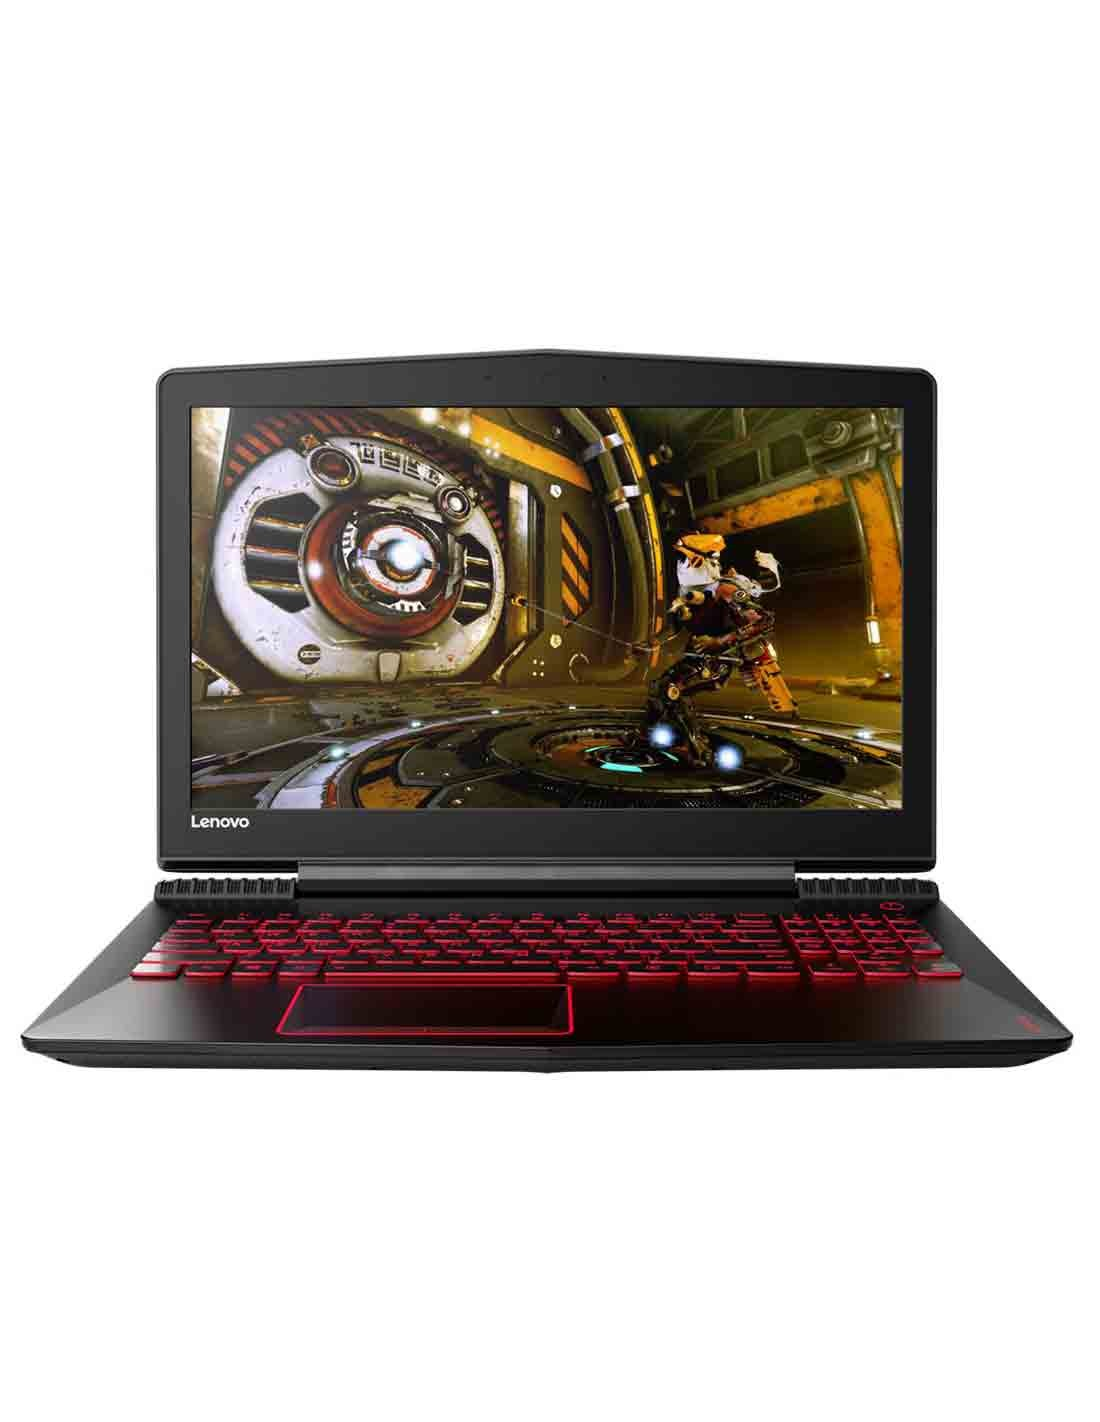 Lenovo Legion Y520 Intel Core i7 Buy online at a cheap price